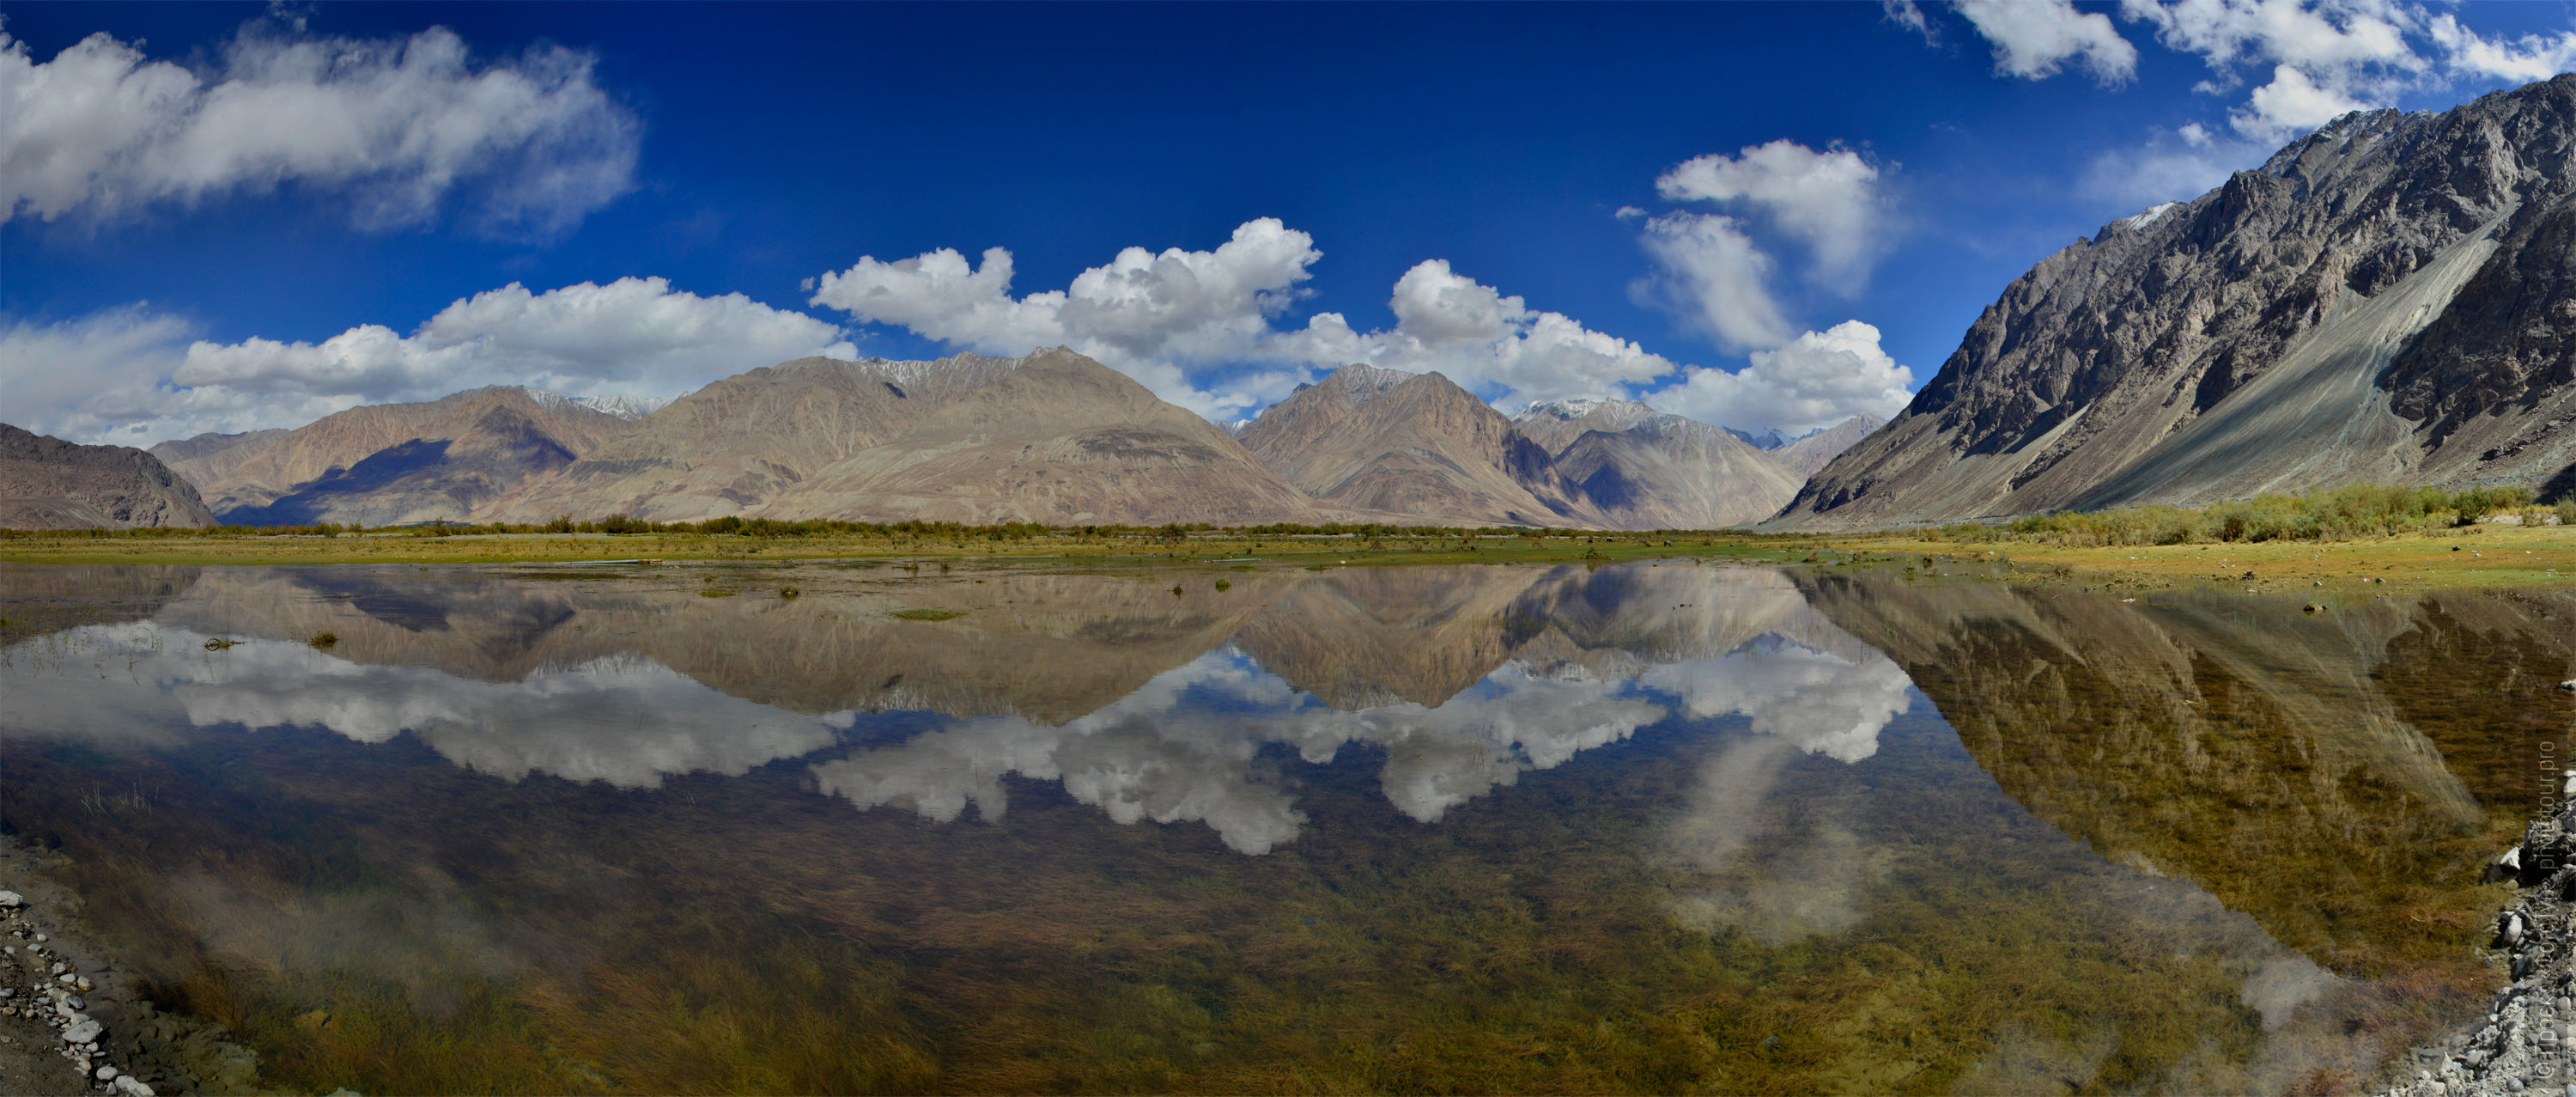 Lakes of the Nubra valley. Tour Legends of Tibet: Ladakh, Lamayuru, Da Khan and Nubra, 19.09. - 28.09.2019.